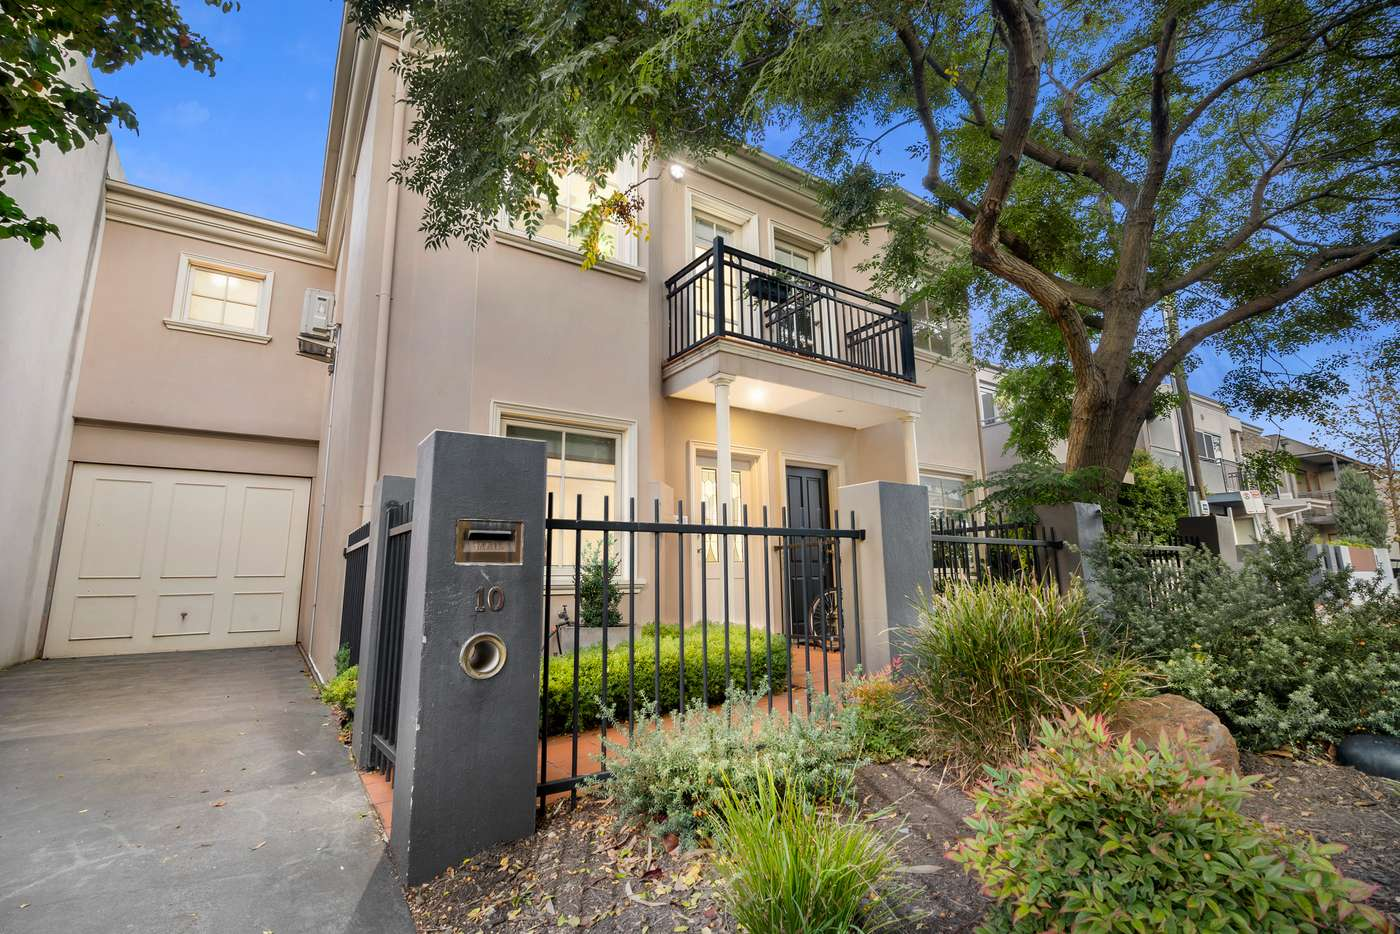 Main view of Homely house listing, 10 Continental Way, Prahran VIC 3181